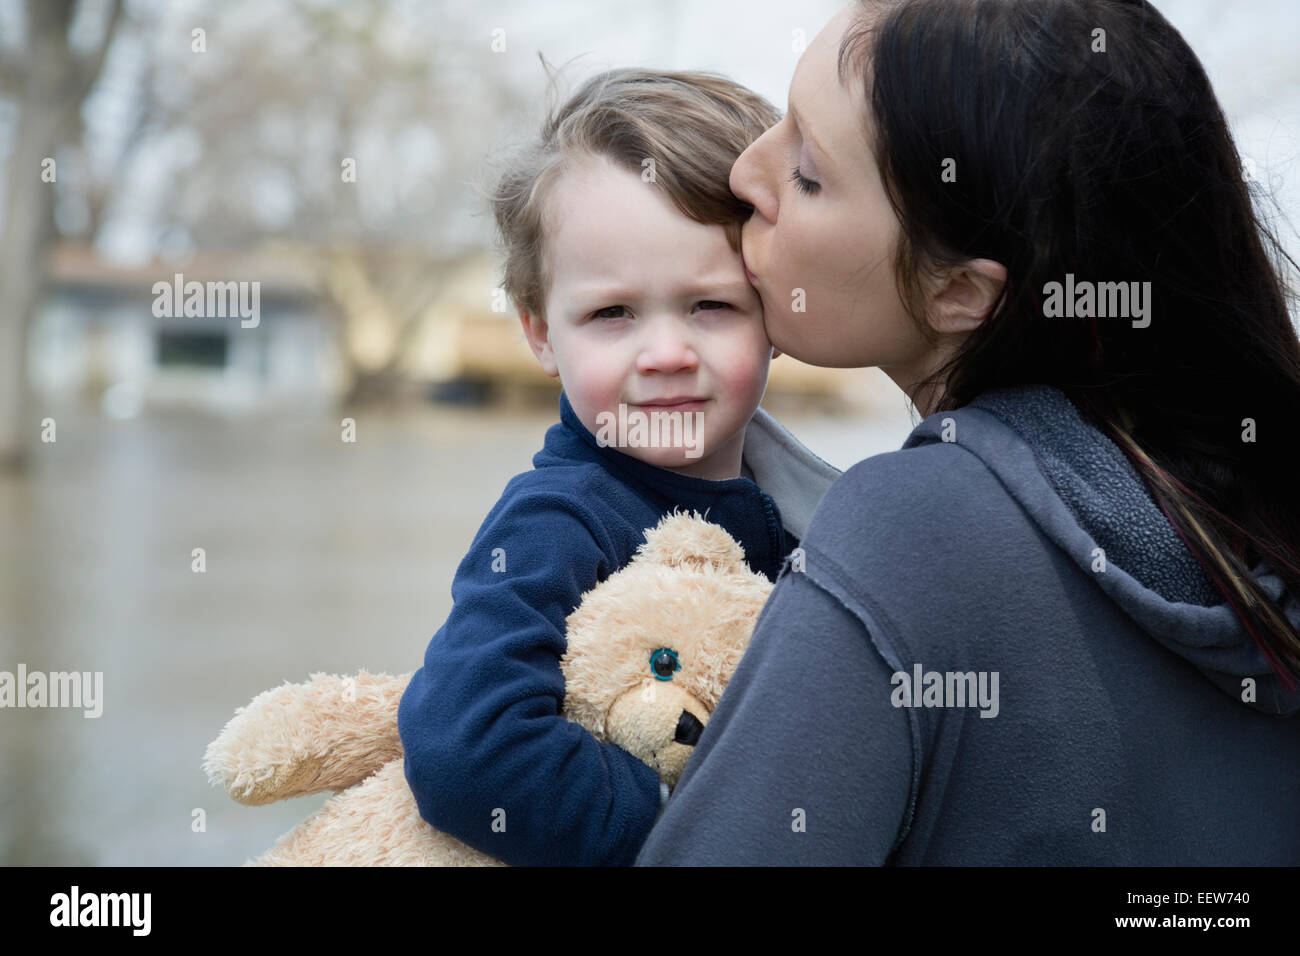 Mother with son standing in flooded town - Stock Image